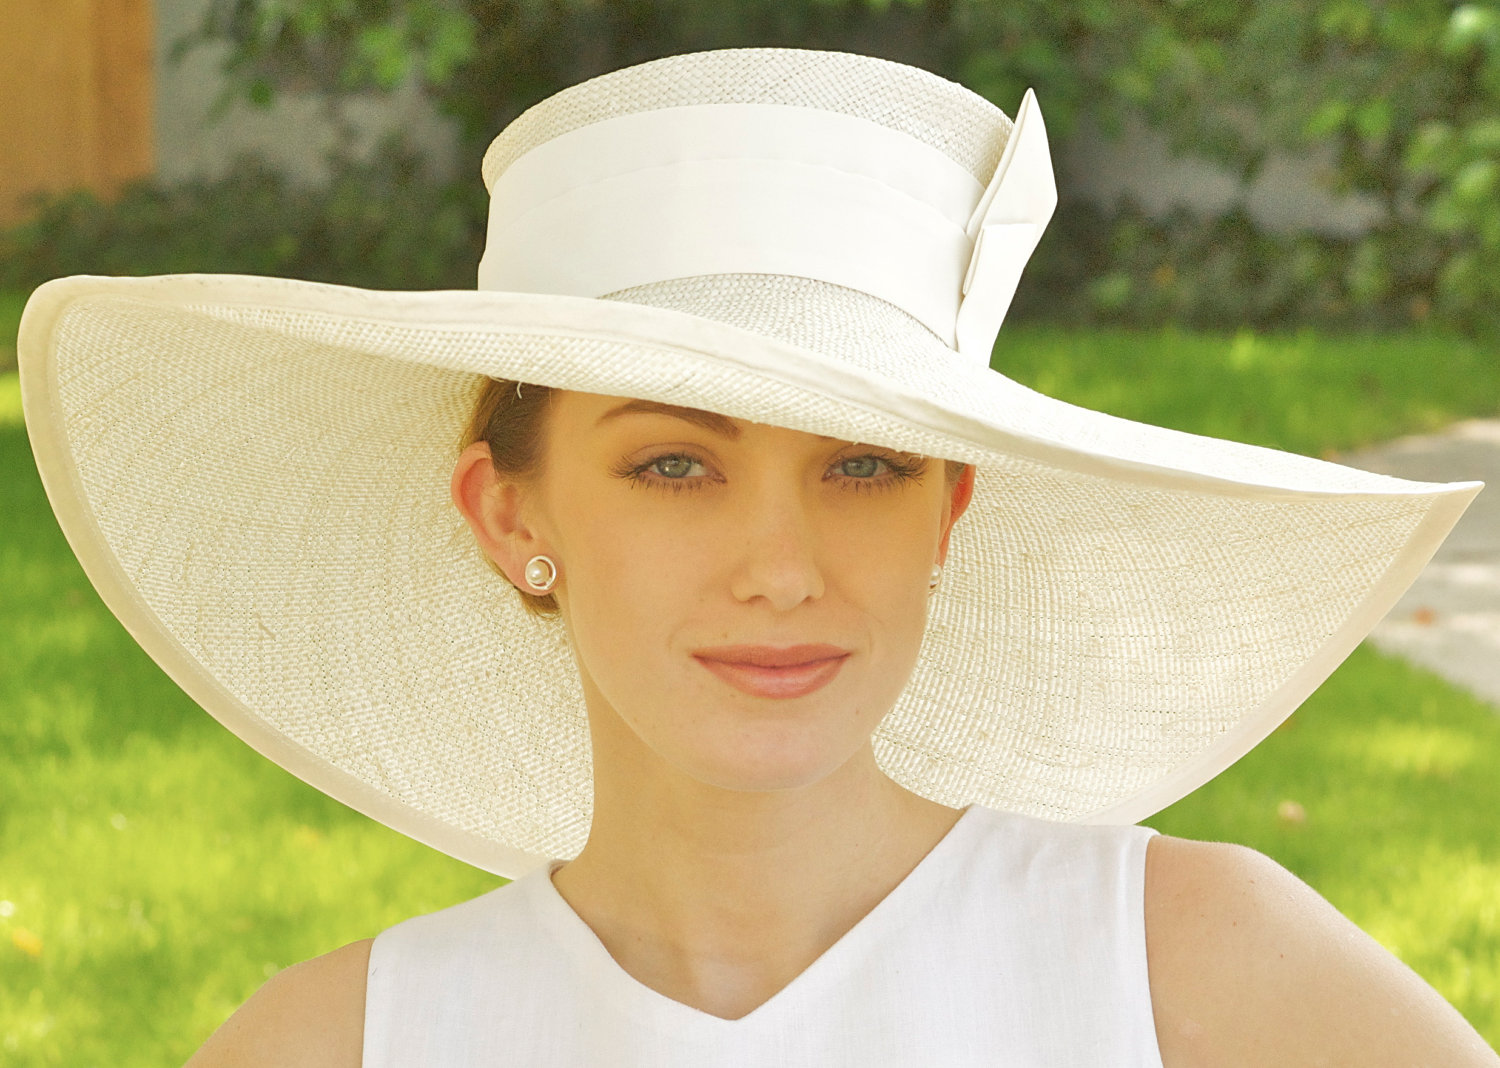 Straw Hat clipart church hat You Better best That my